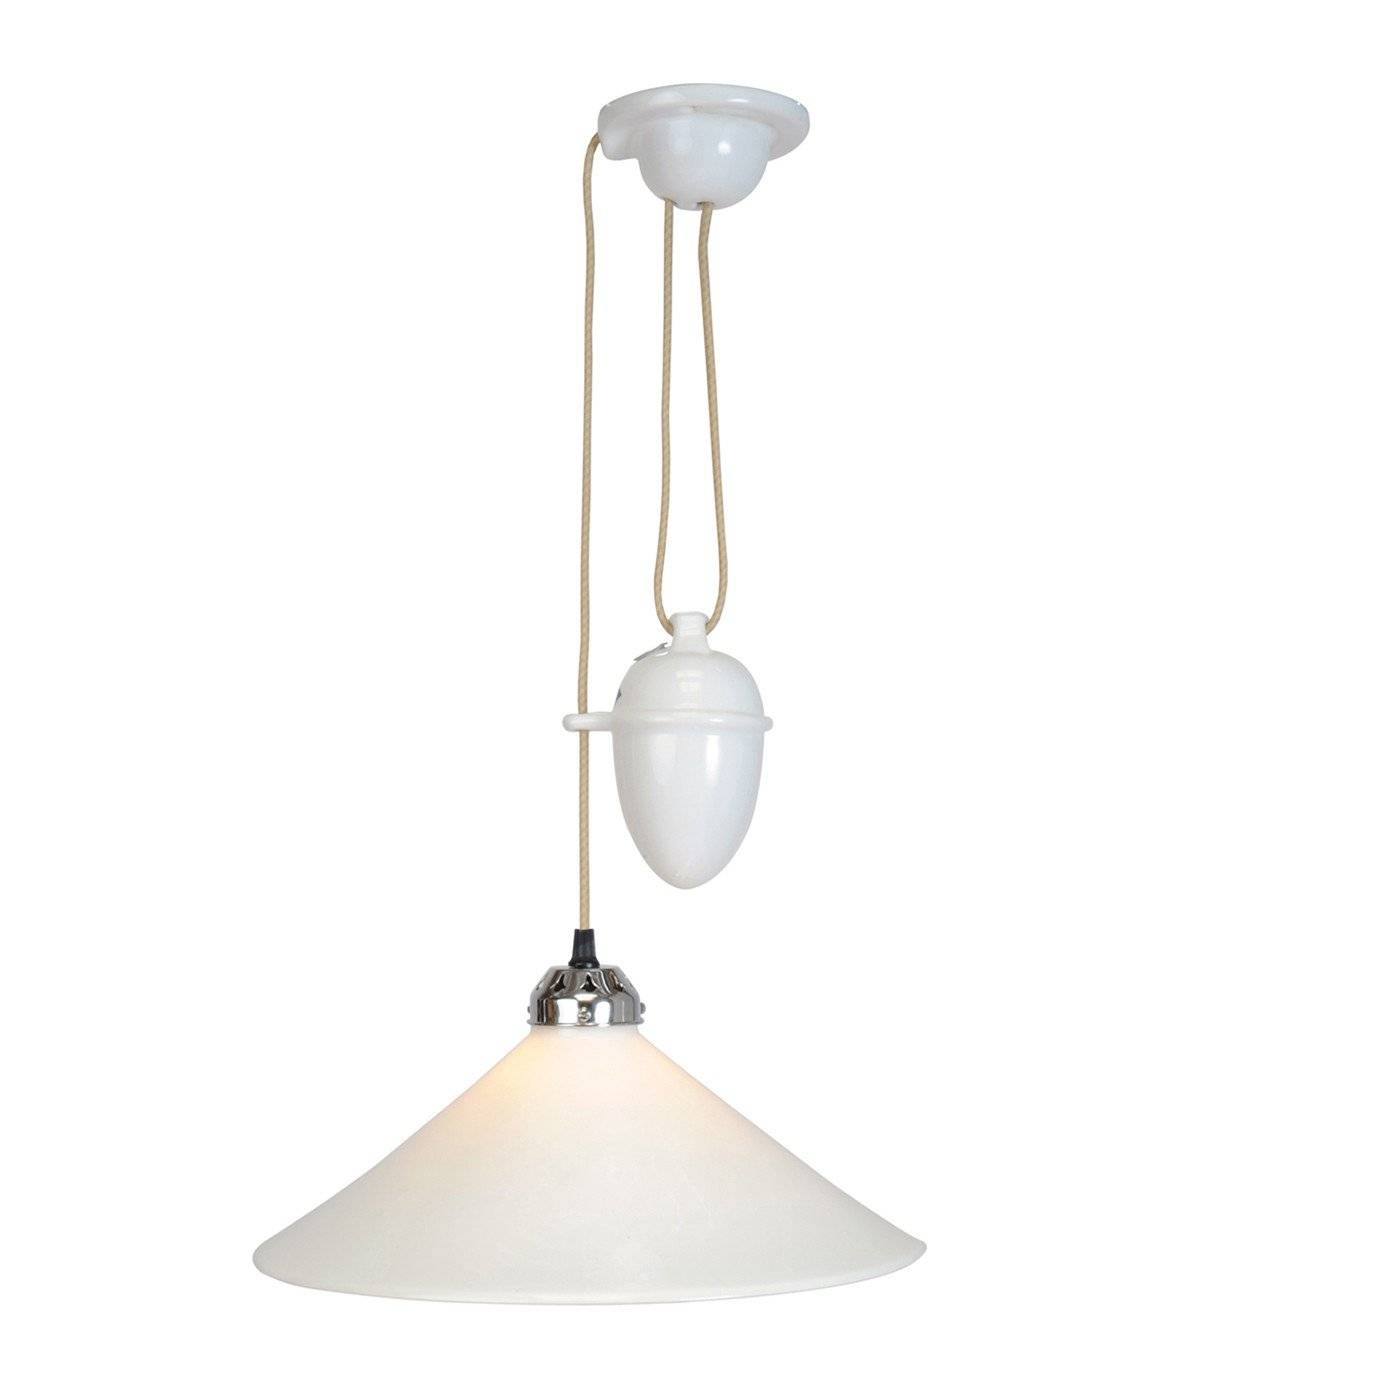 Original Btc Cobb Rise & Fall Large Bone China Pendant with regard to Rise And Fall Pendant Lighting (Image 14 of 15)